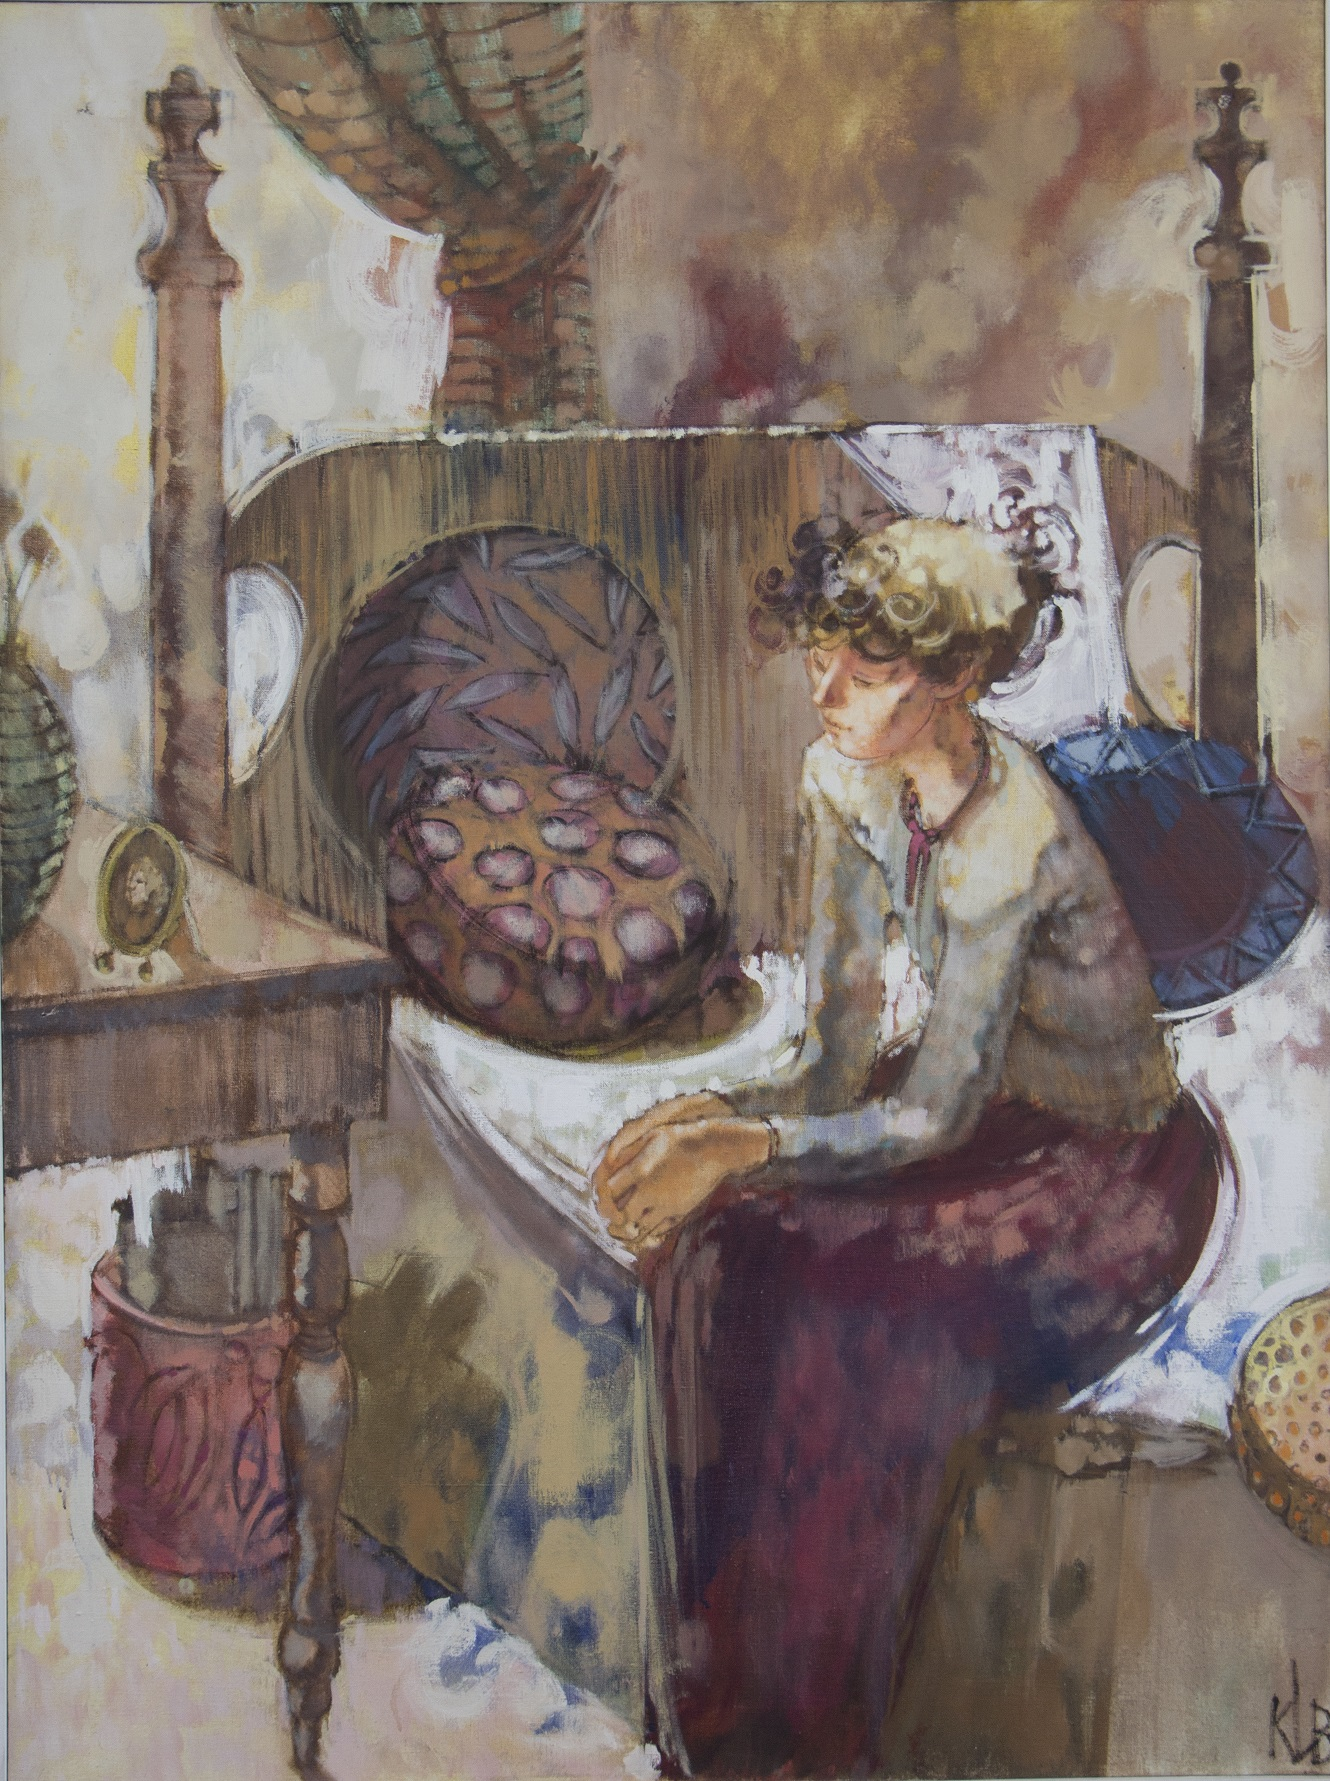 painting of a woman sitting on the edge of a 4 poster bed